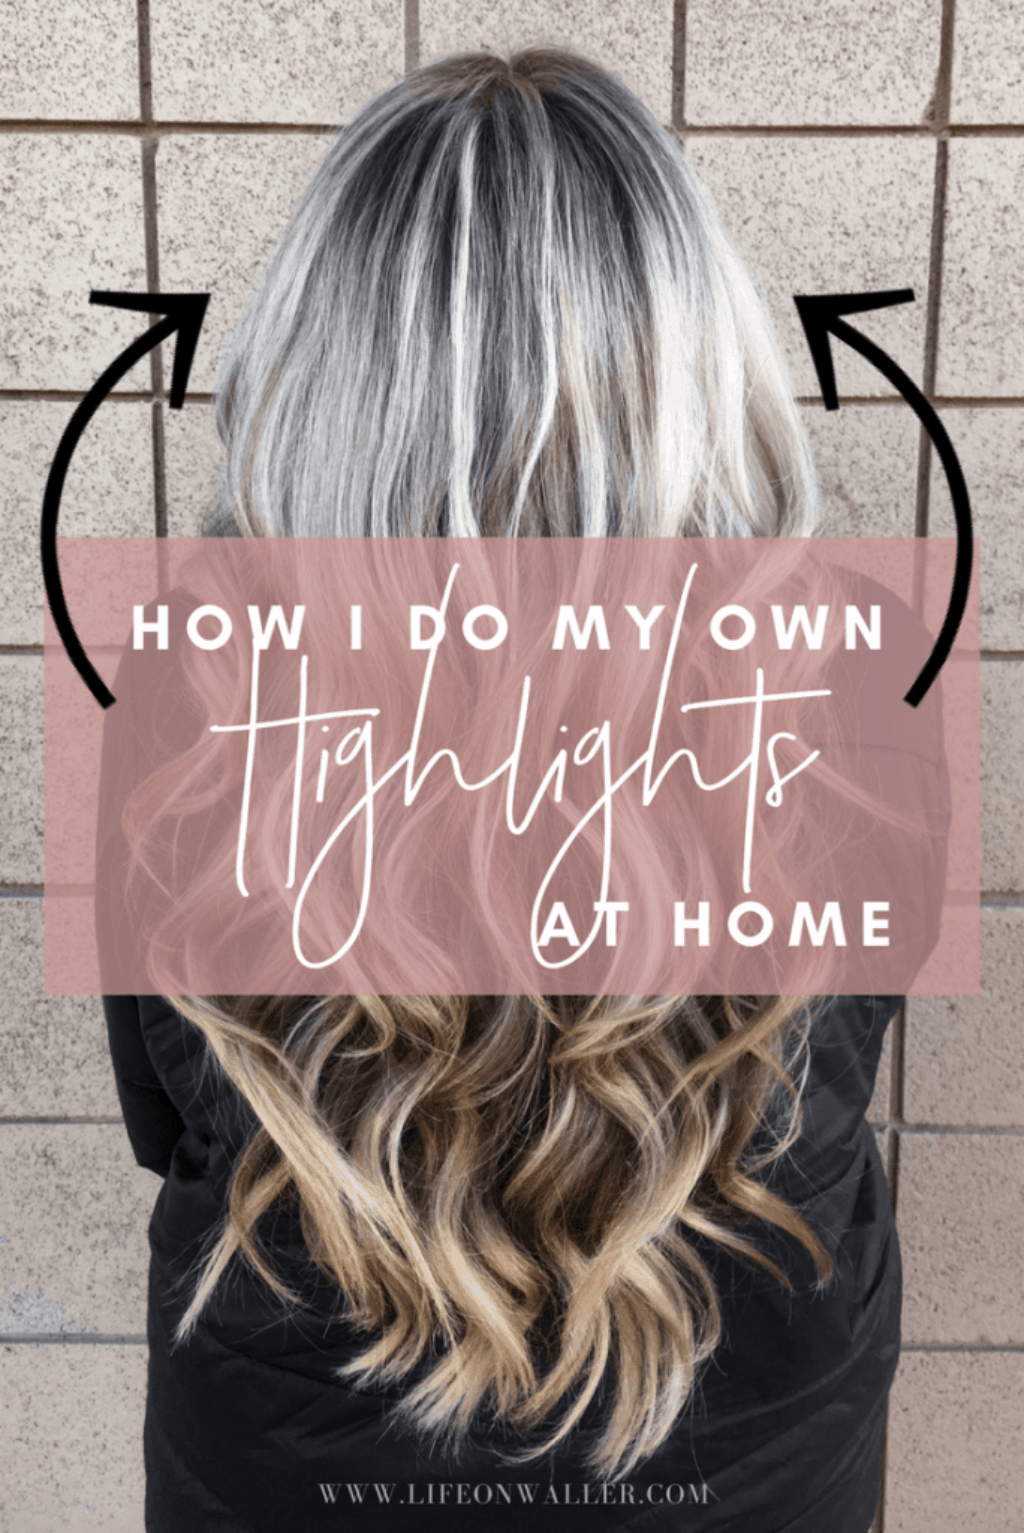 How To Do Your Own Highlights at Home - Cassie Scroggins